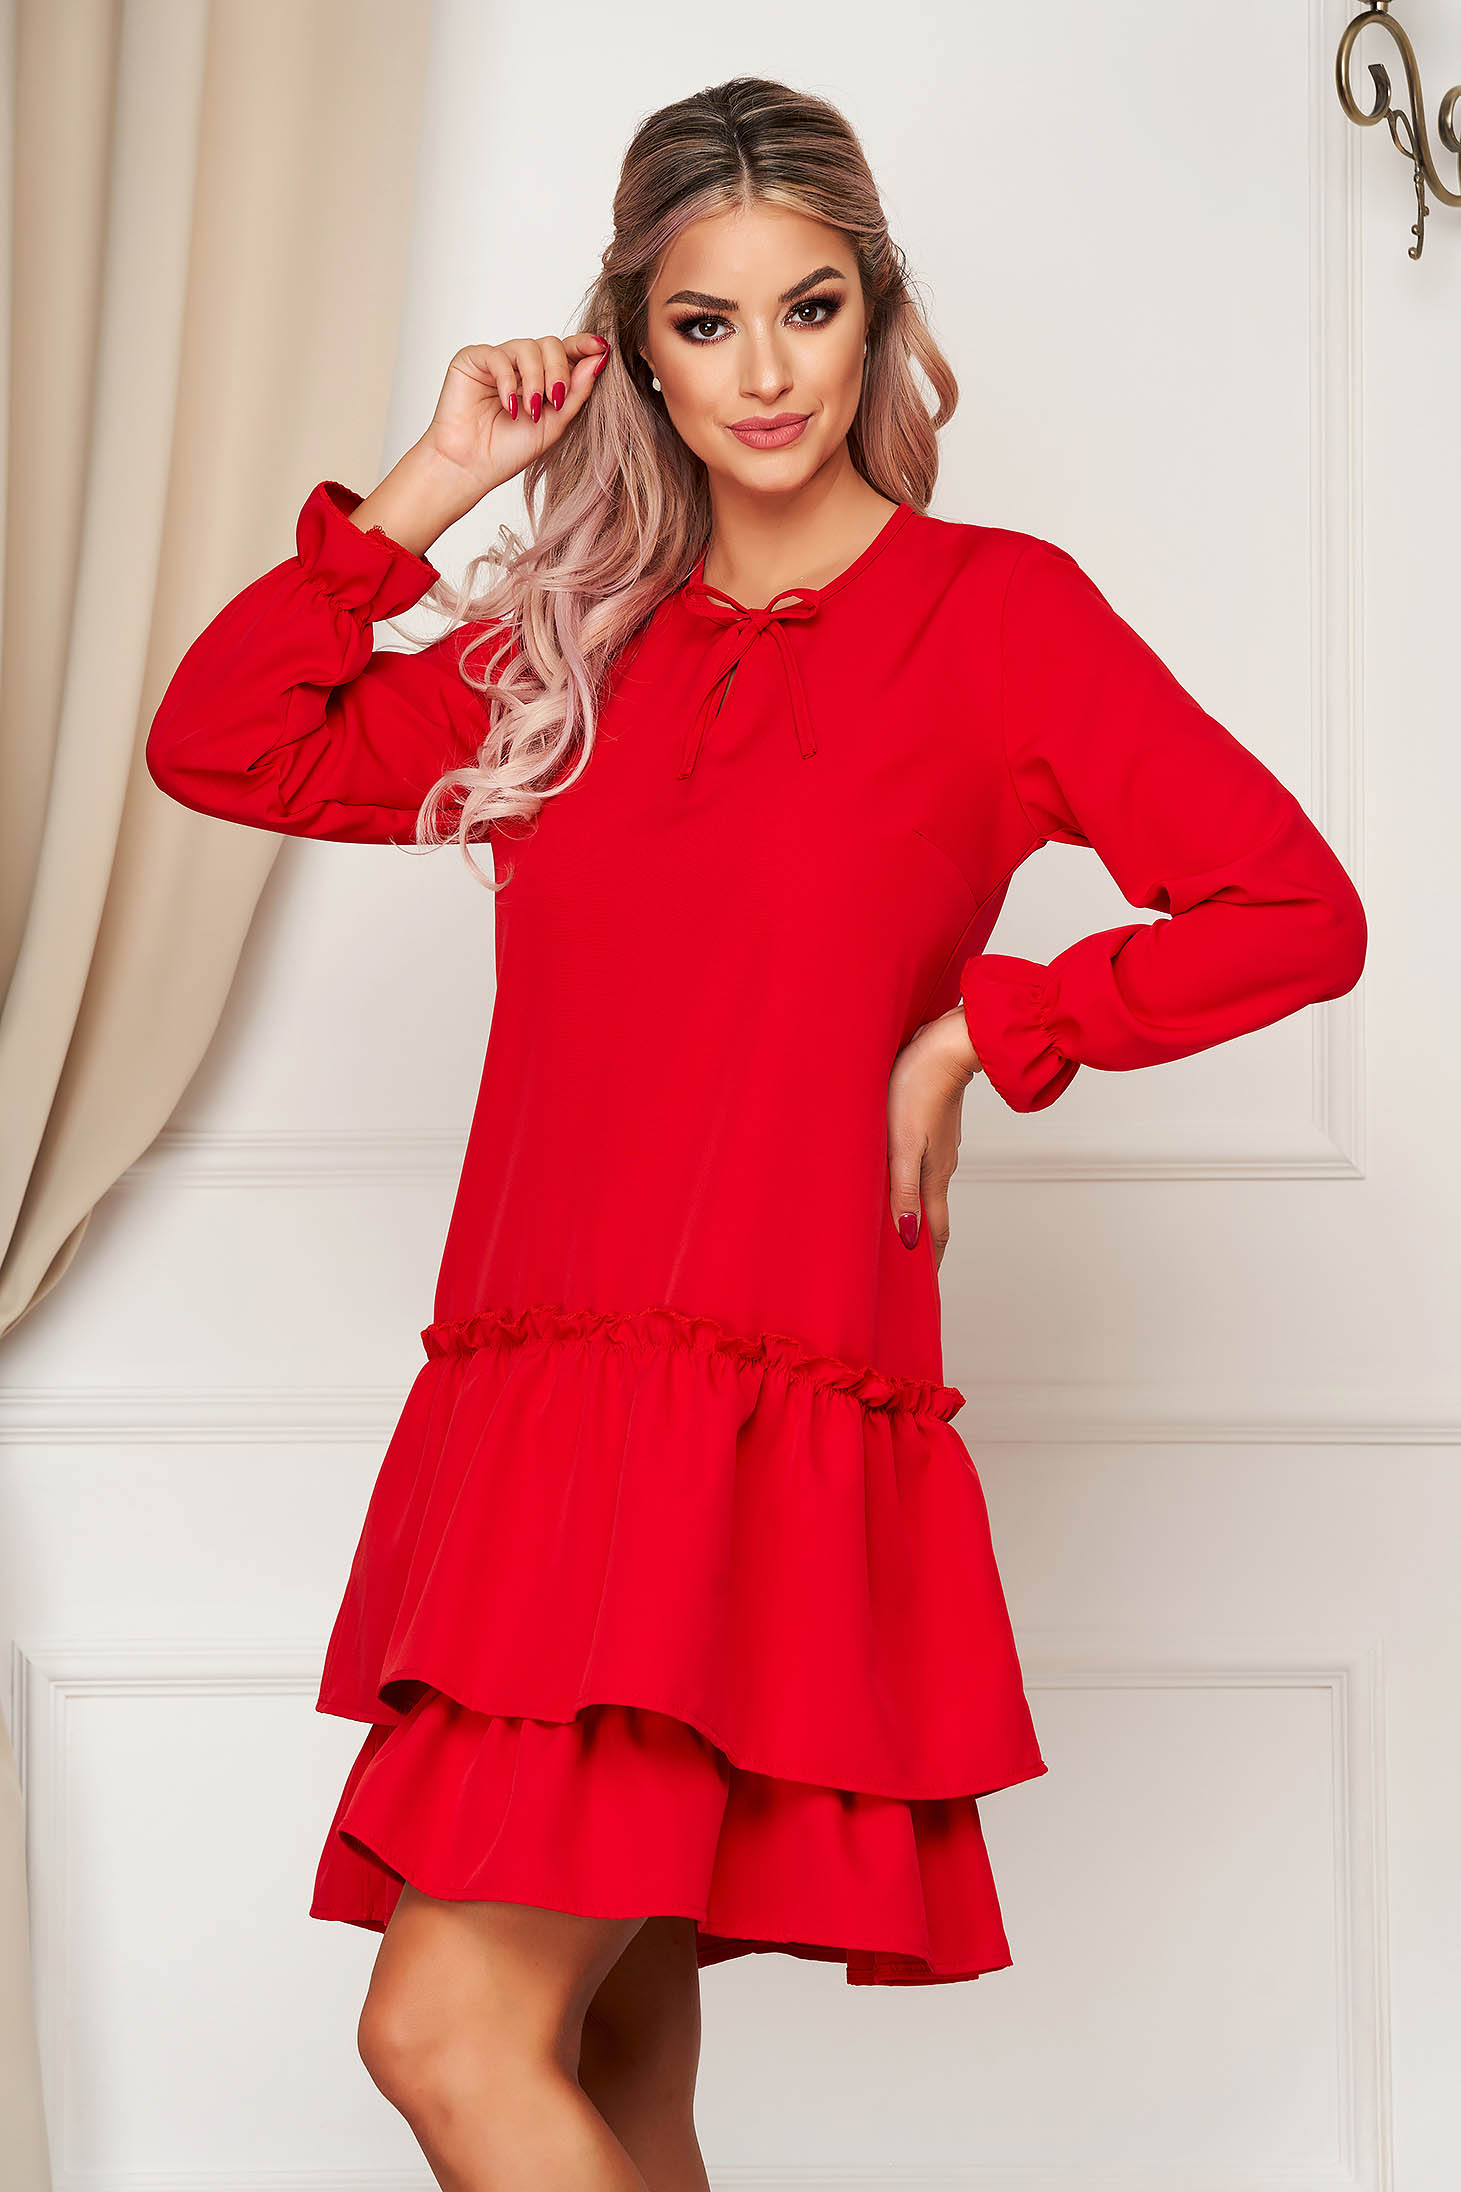 StarShinerS red dress daily flared slightly elastic fabric with ruffles at the buttom of the dress